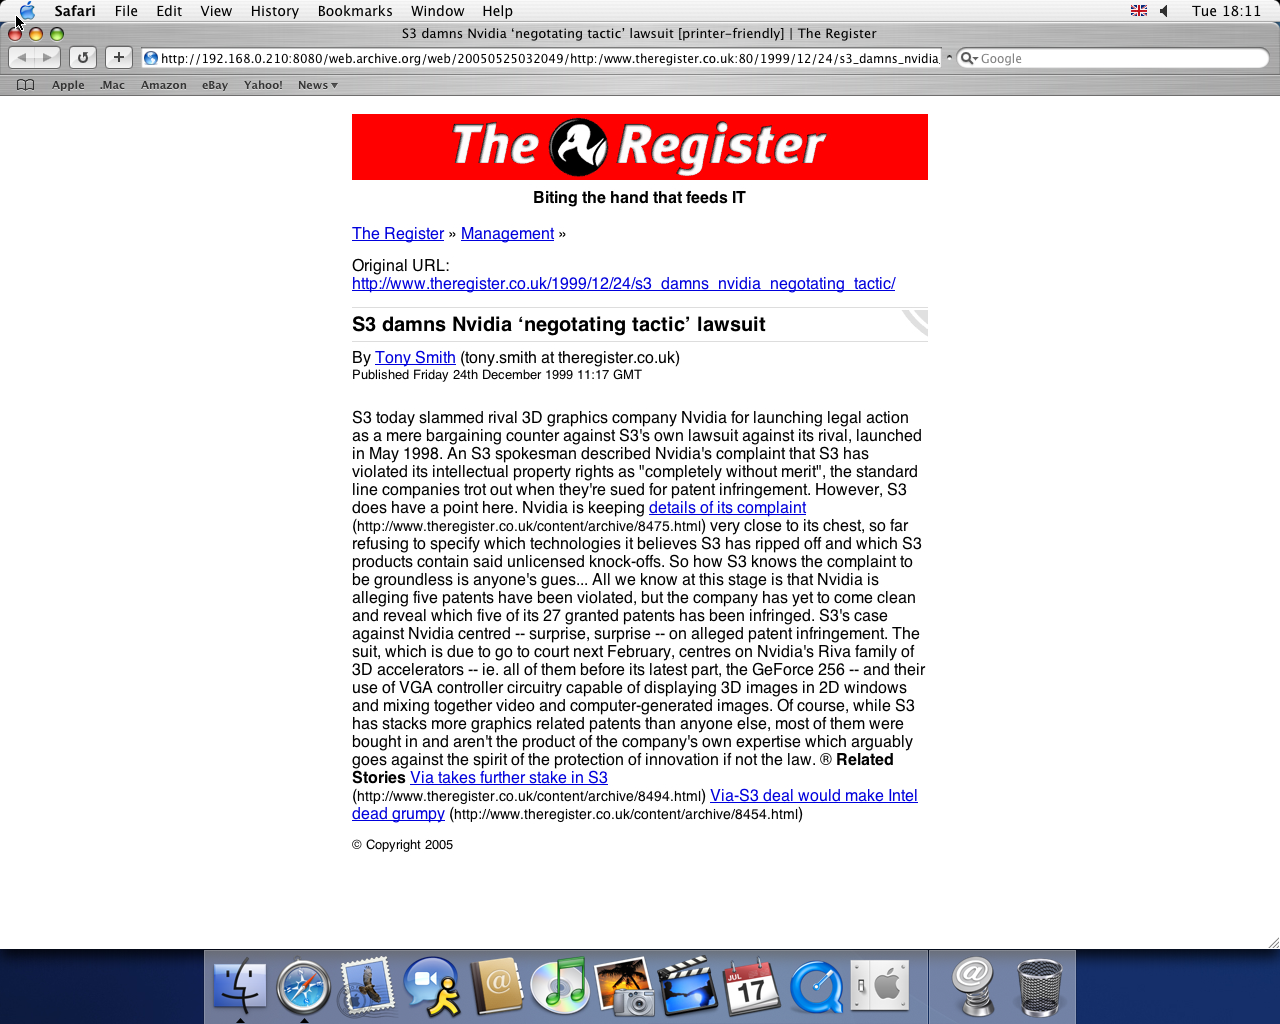 OS X 10.3 PPC with Safari 1.1 displaying a page from TheRegister.co.uk archived at May 25, 2005 at 03:20:49